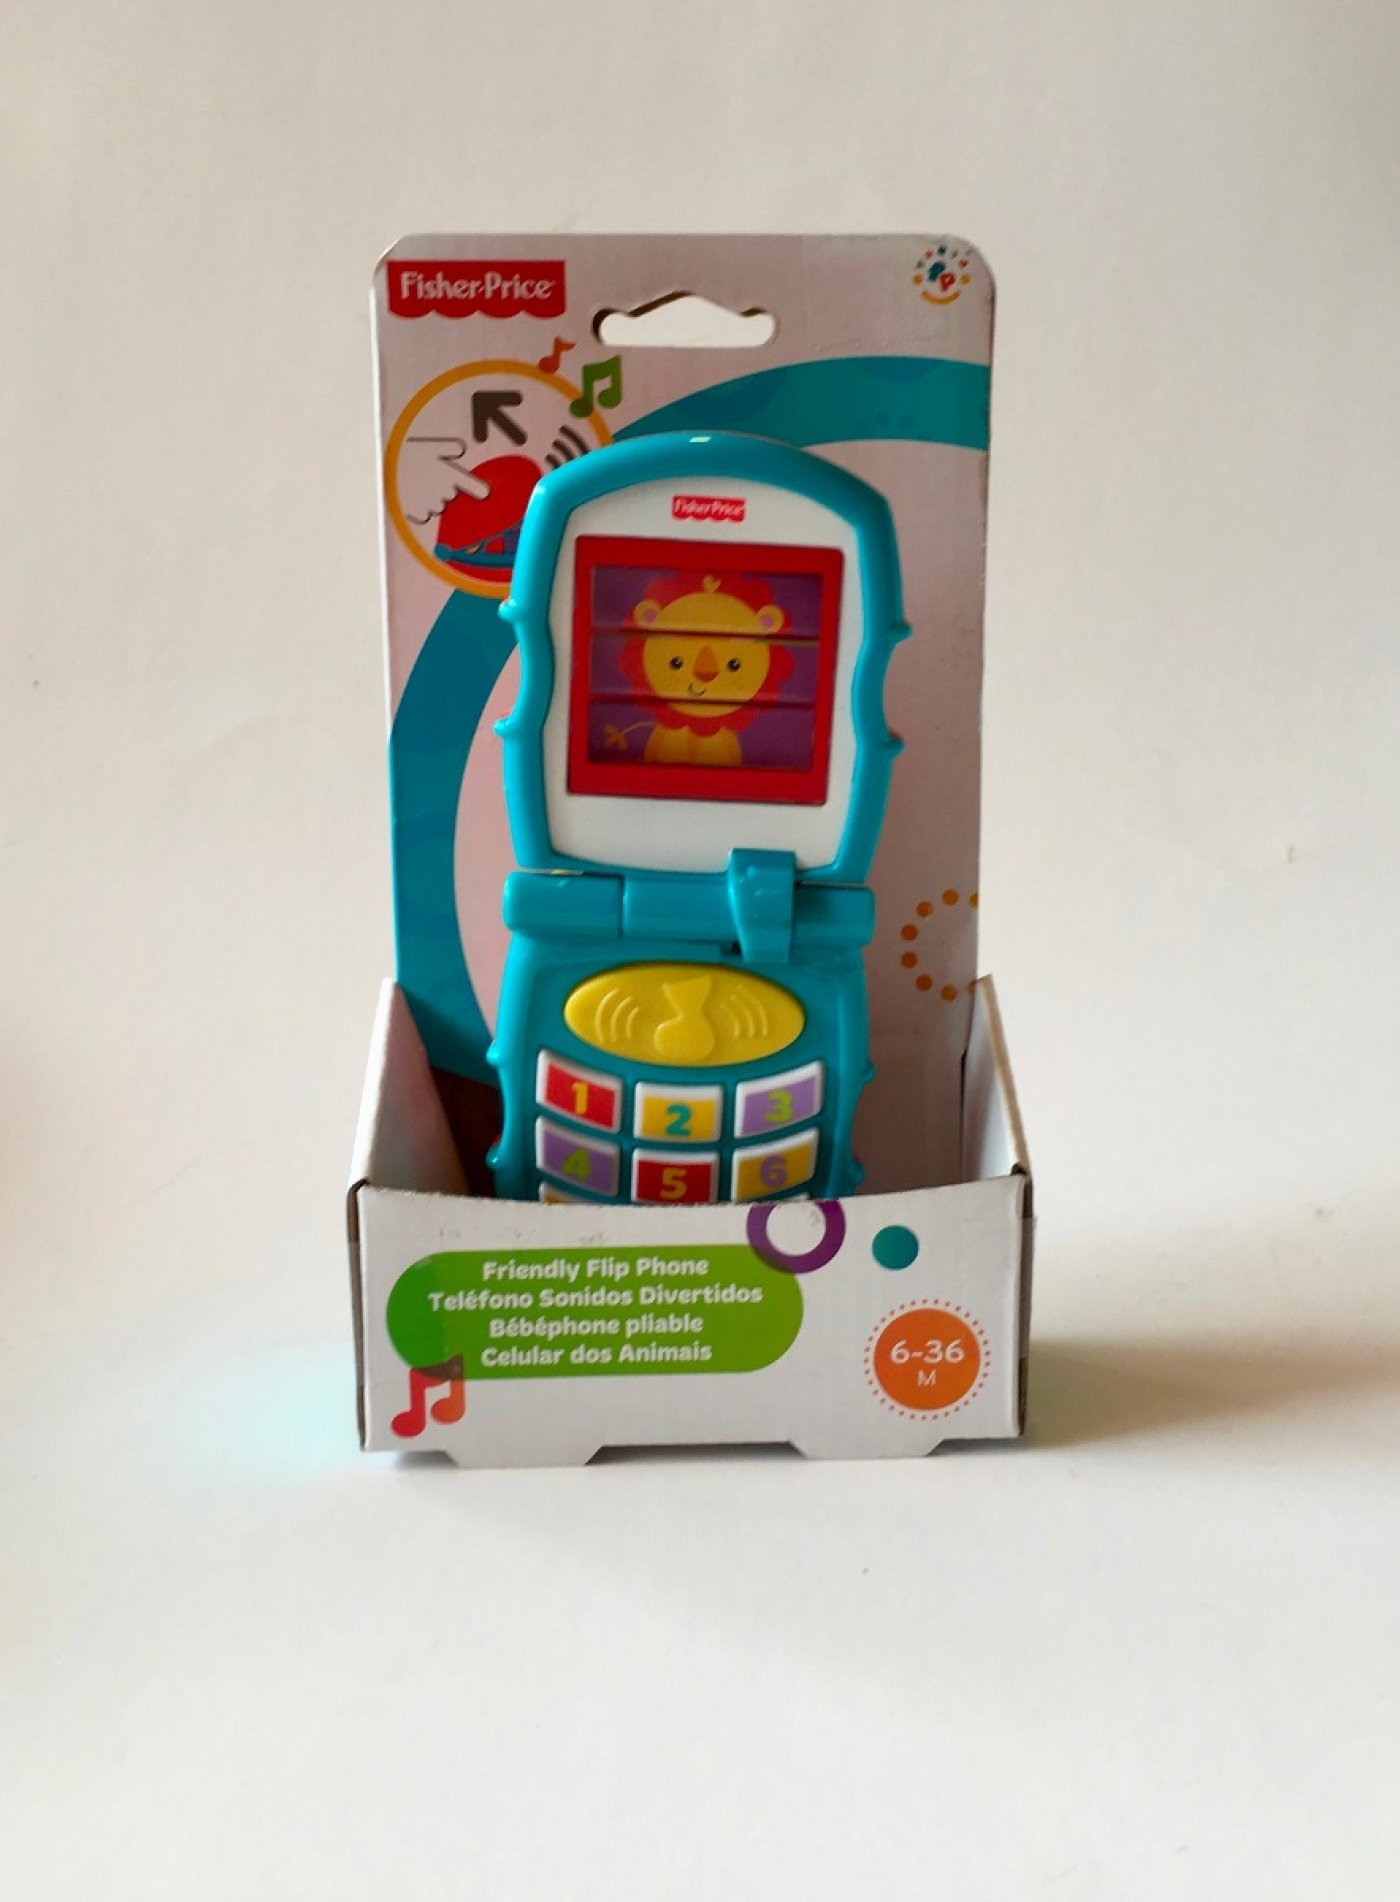 Telefono Sonidos Divertidos Fisher Price